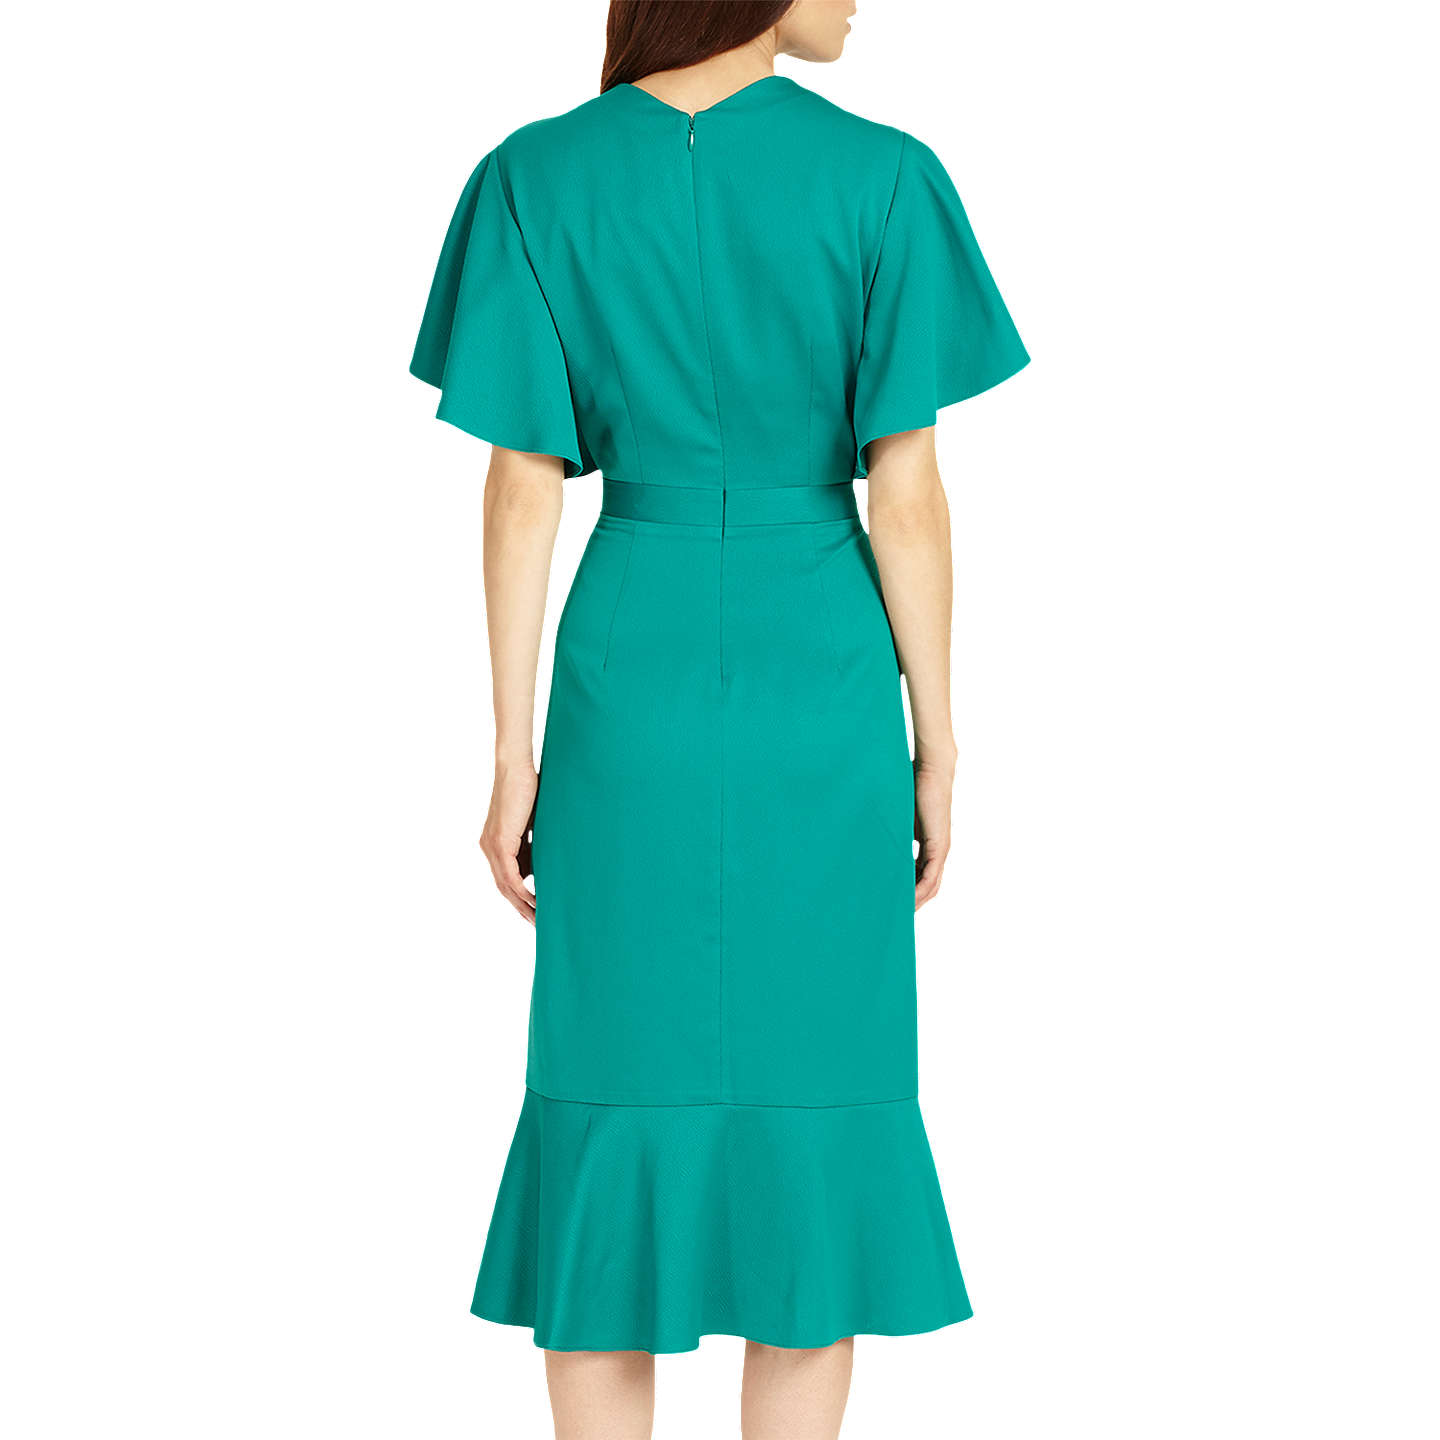 BuyPhase Eight Carlie Frill Dress, Jade, 6 Online at johnlewis.com